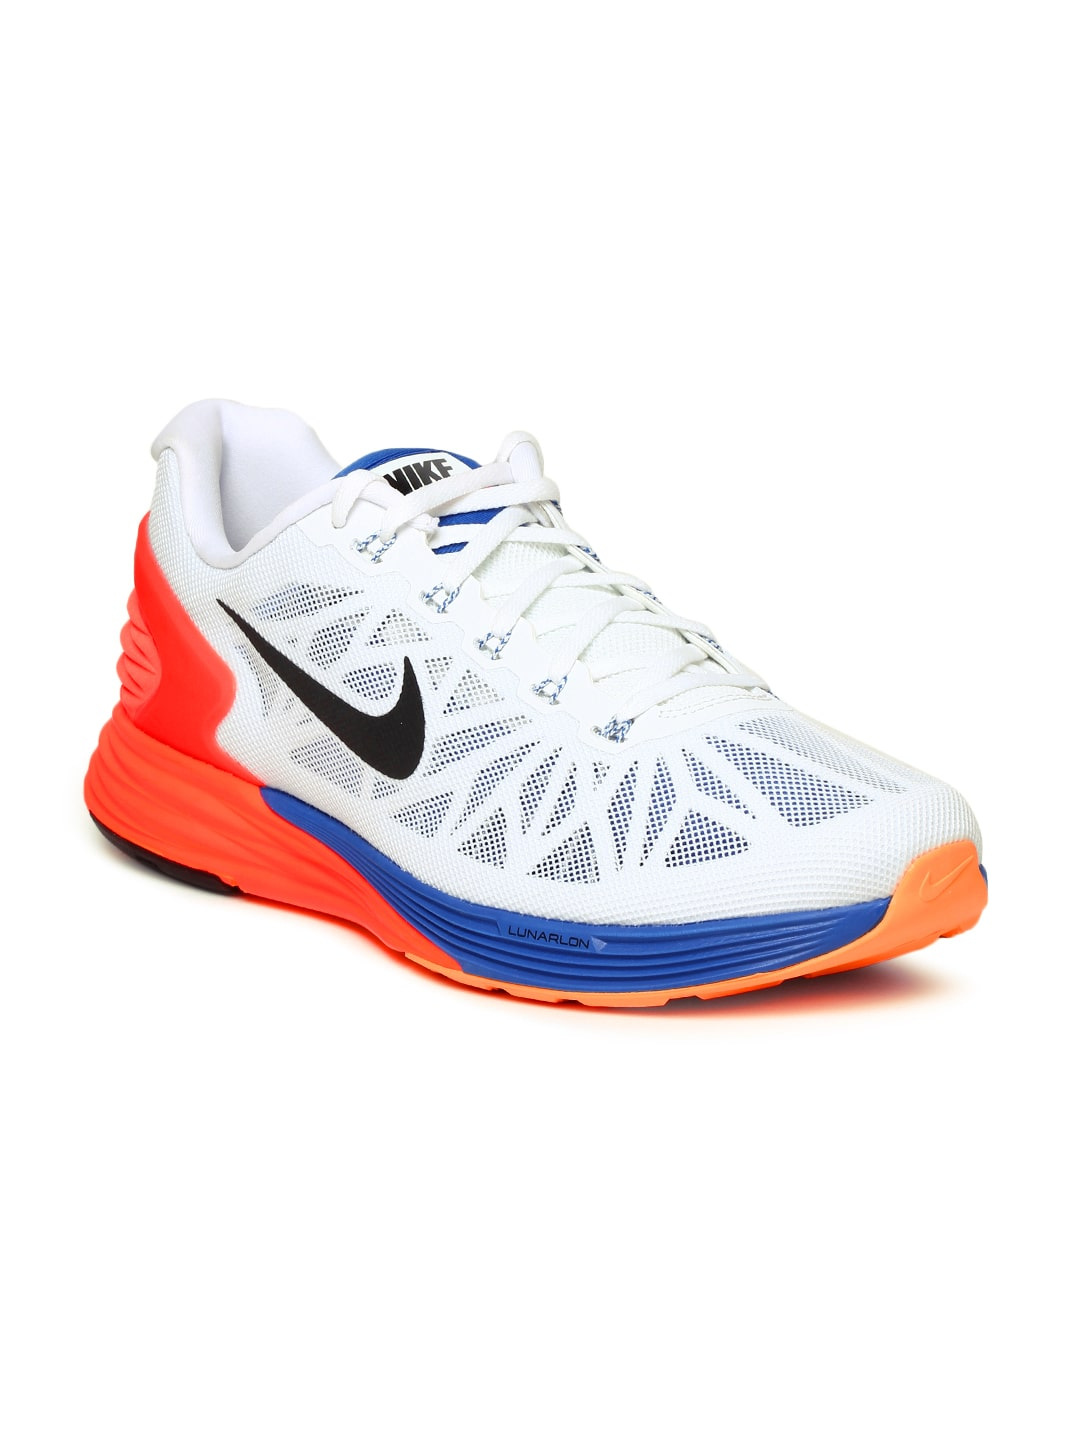 4da9304ba75a8 Nike 654433-101 Men White Lunarglide 6 Sports Shoes - Best Price in ...